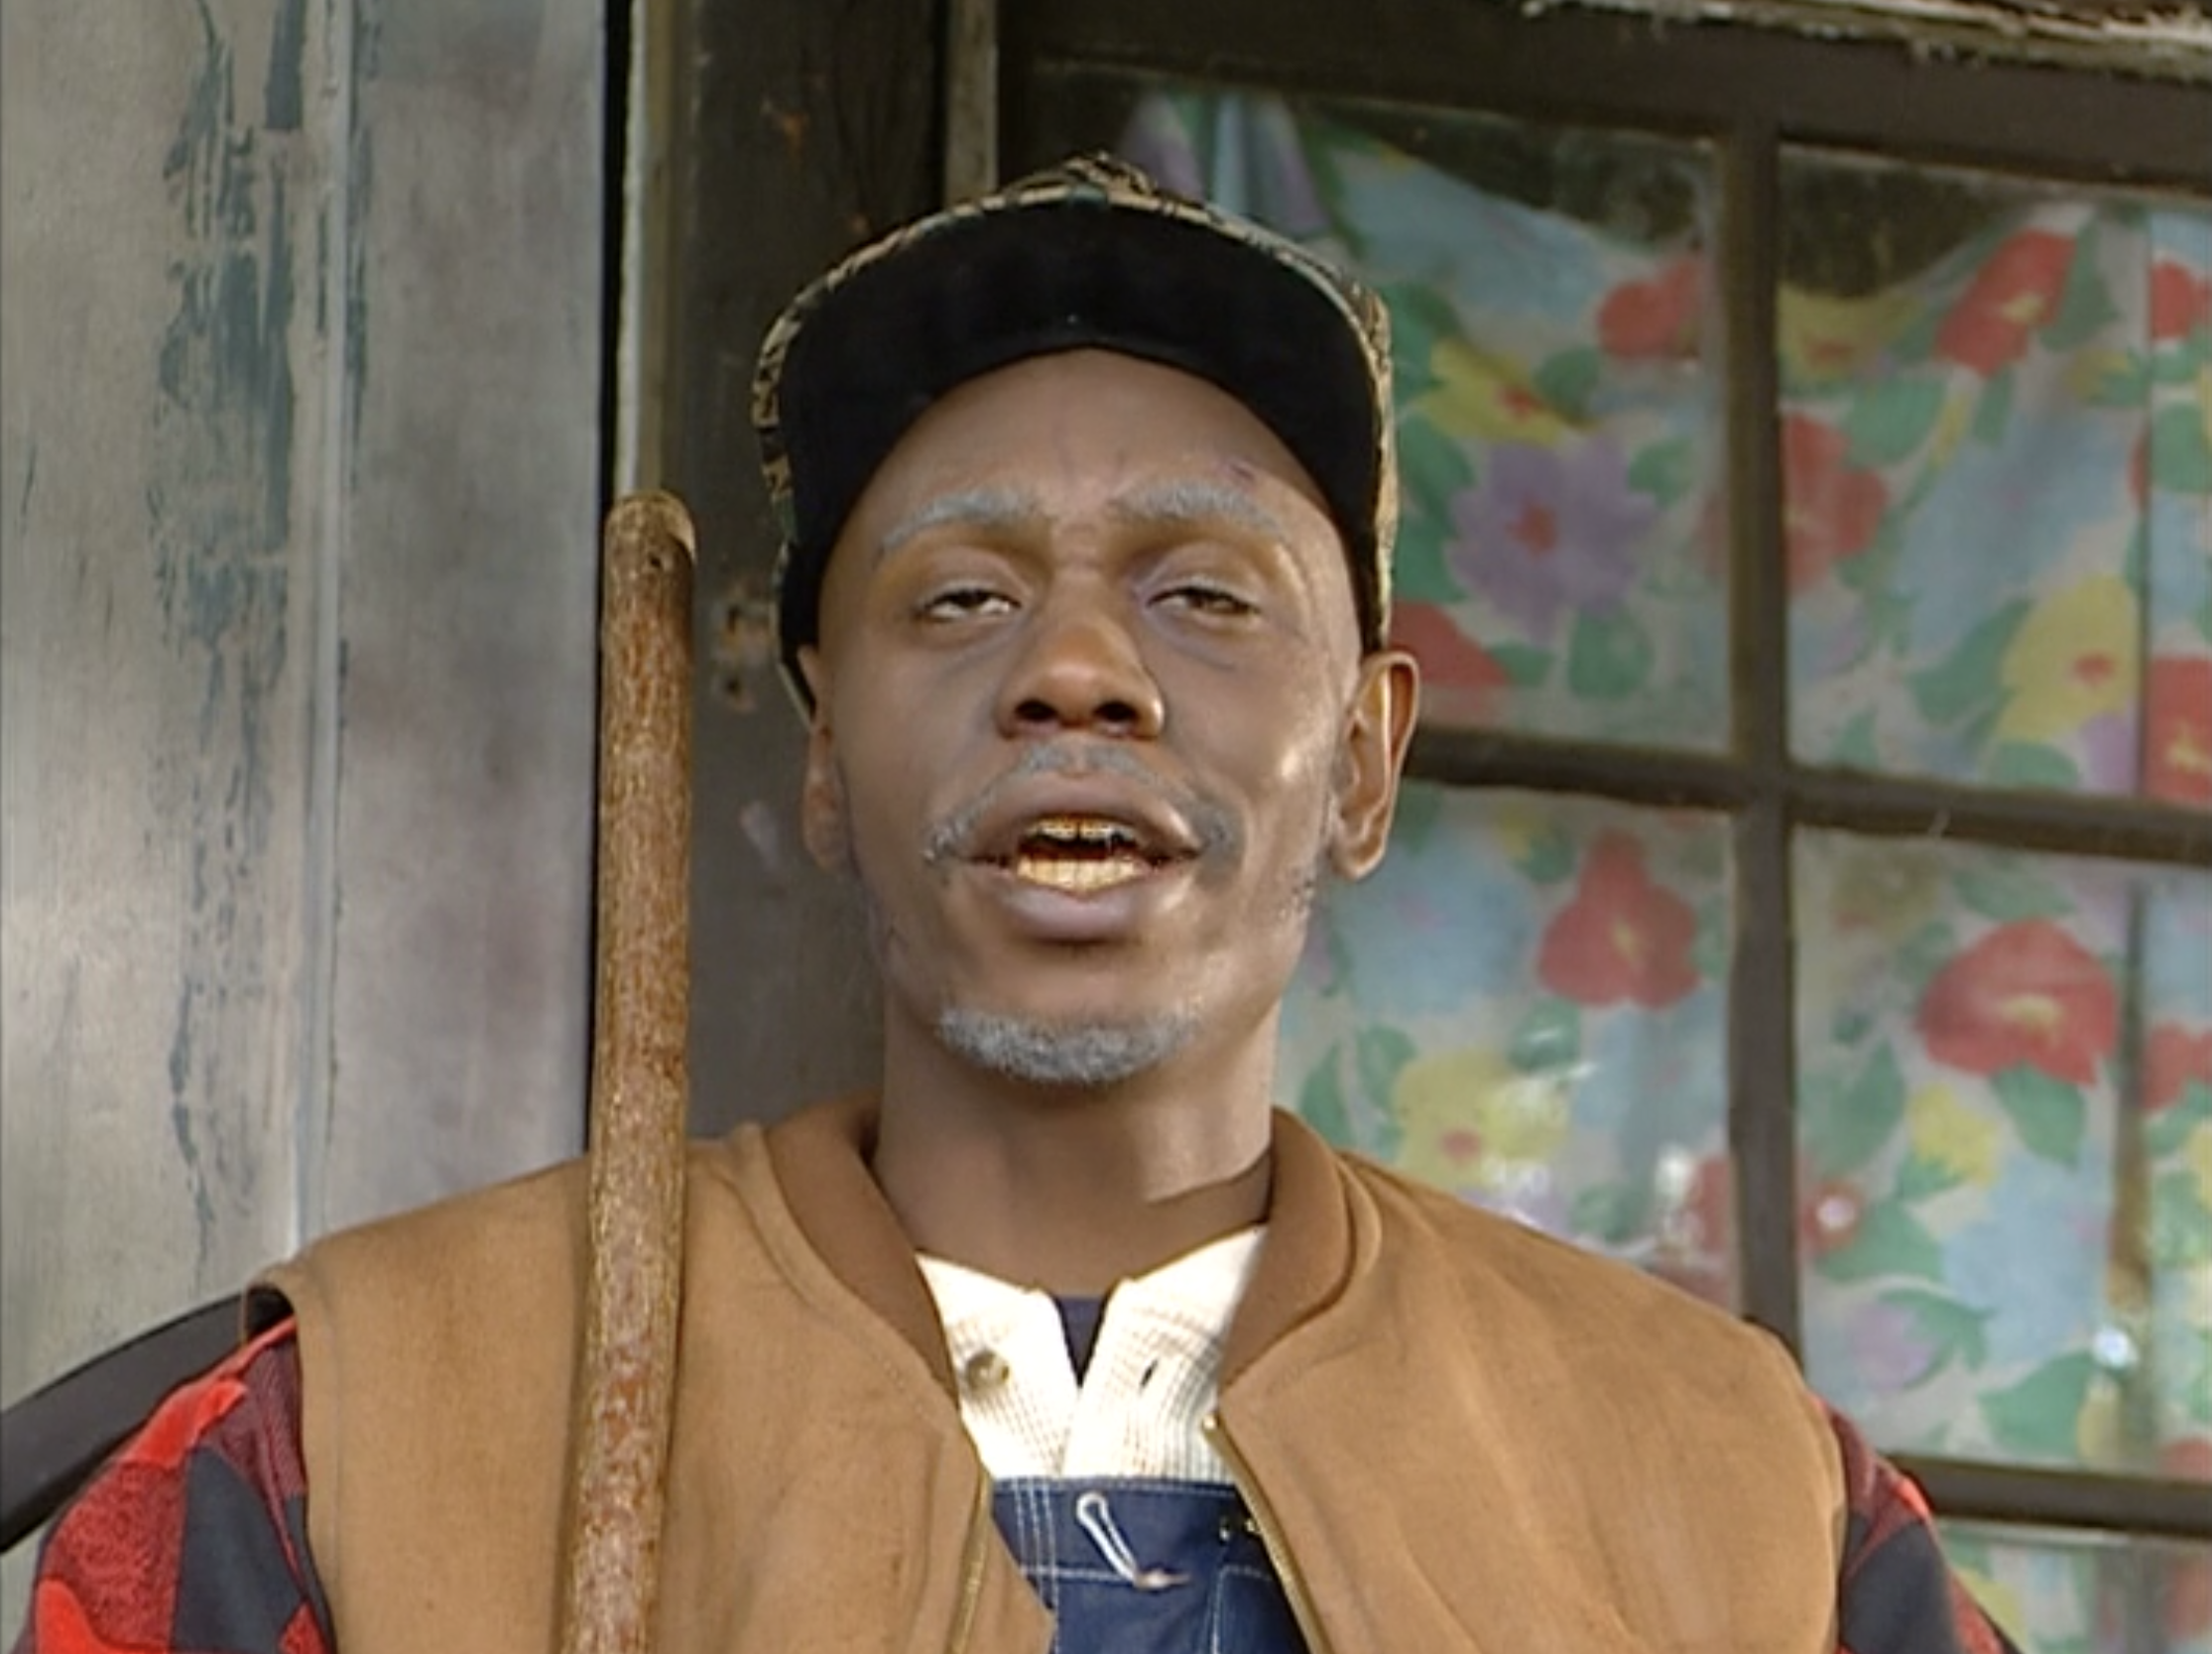 Best Paramount Plus shows and movies - Chappelle's Show